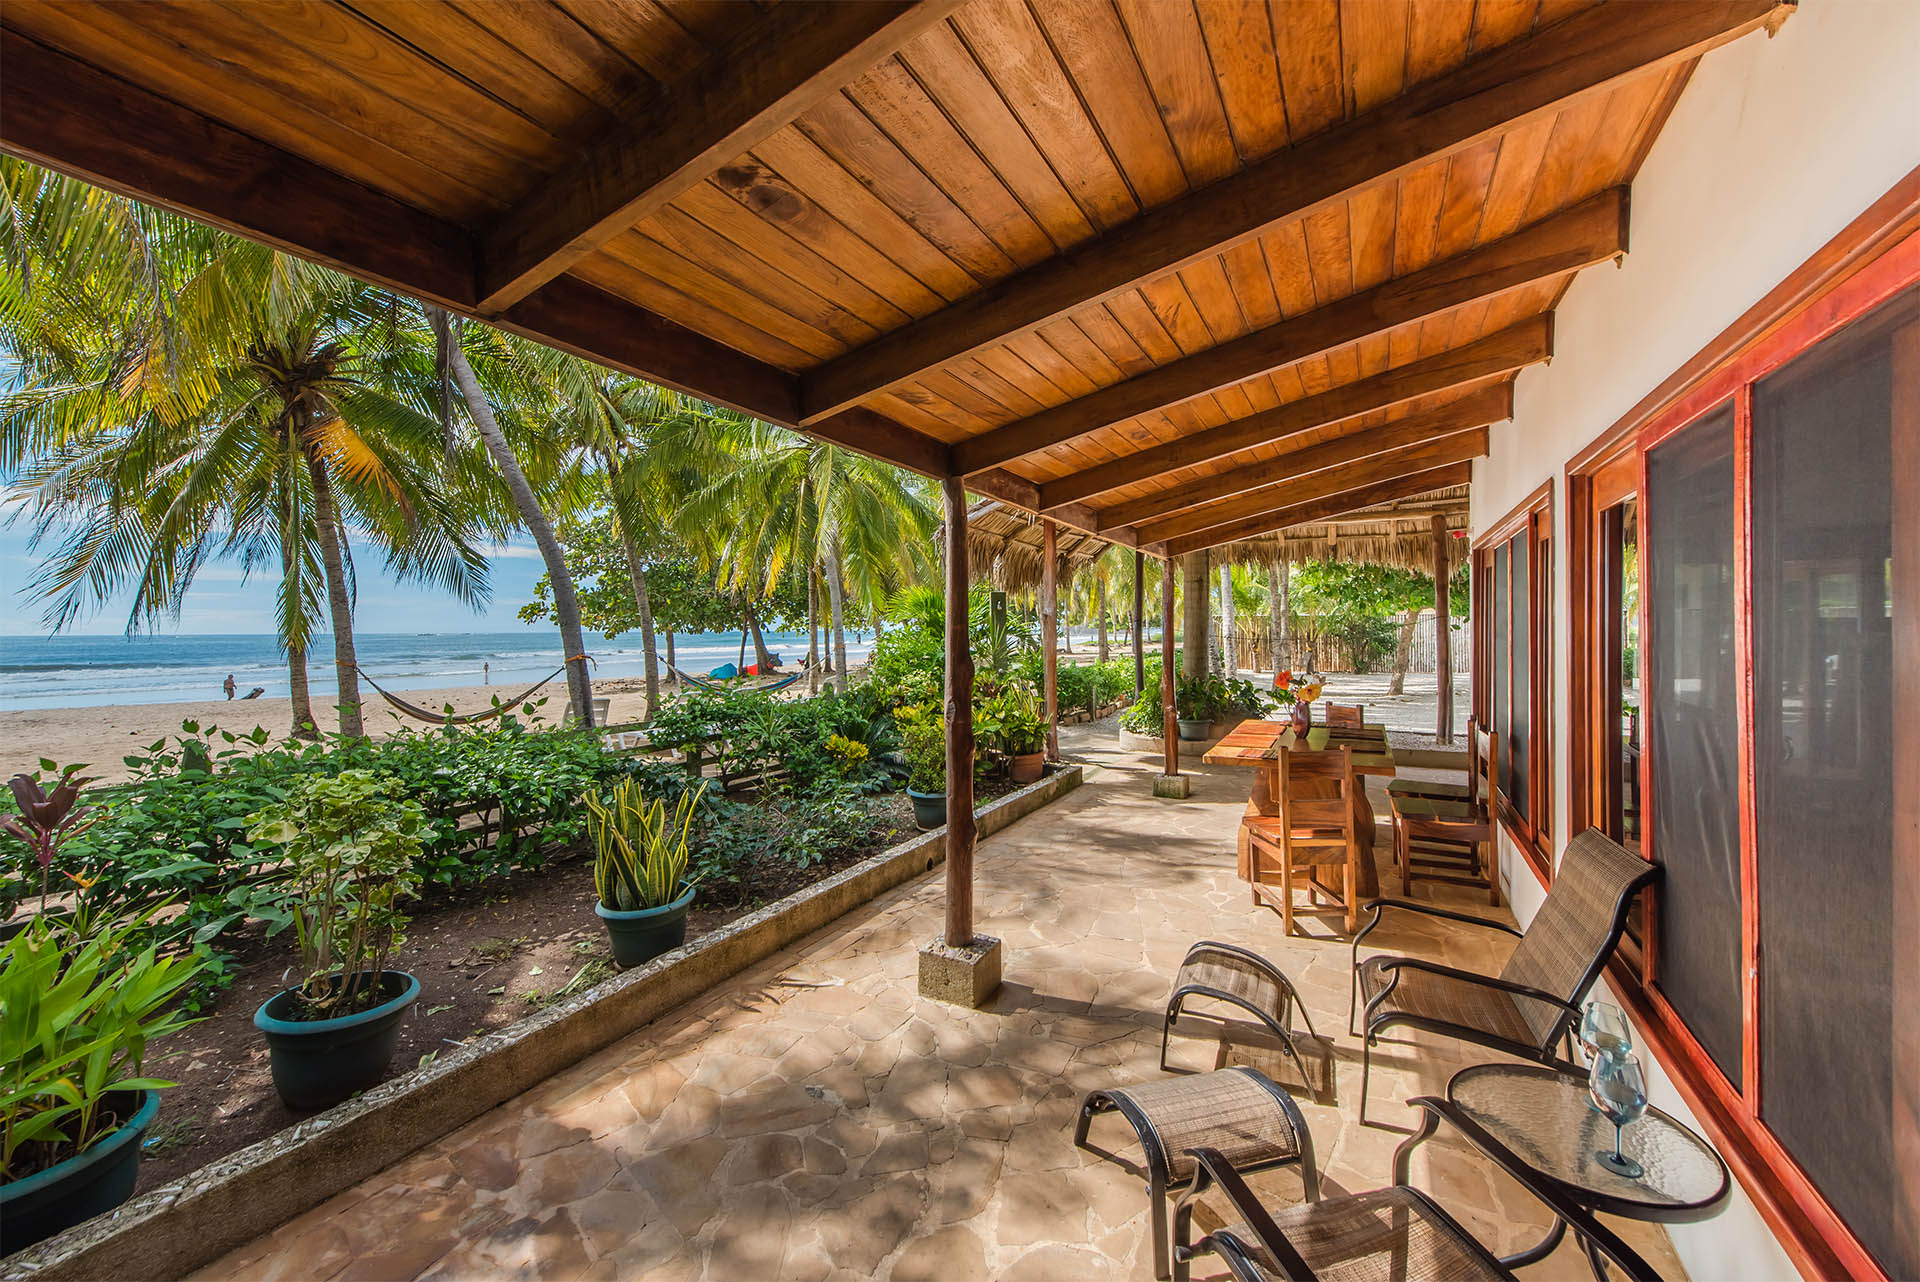 Costa rica vacation rentals premier beach front property for Costa rica vacation homes